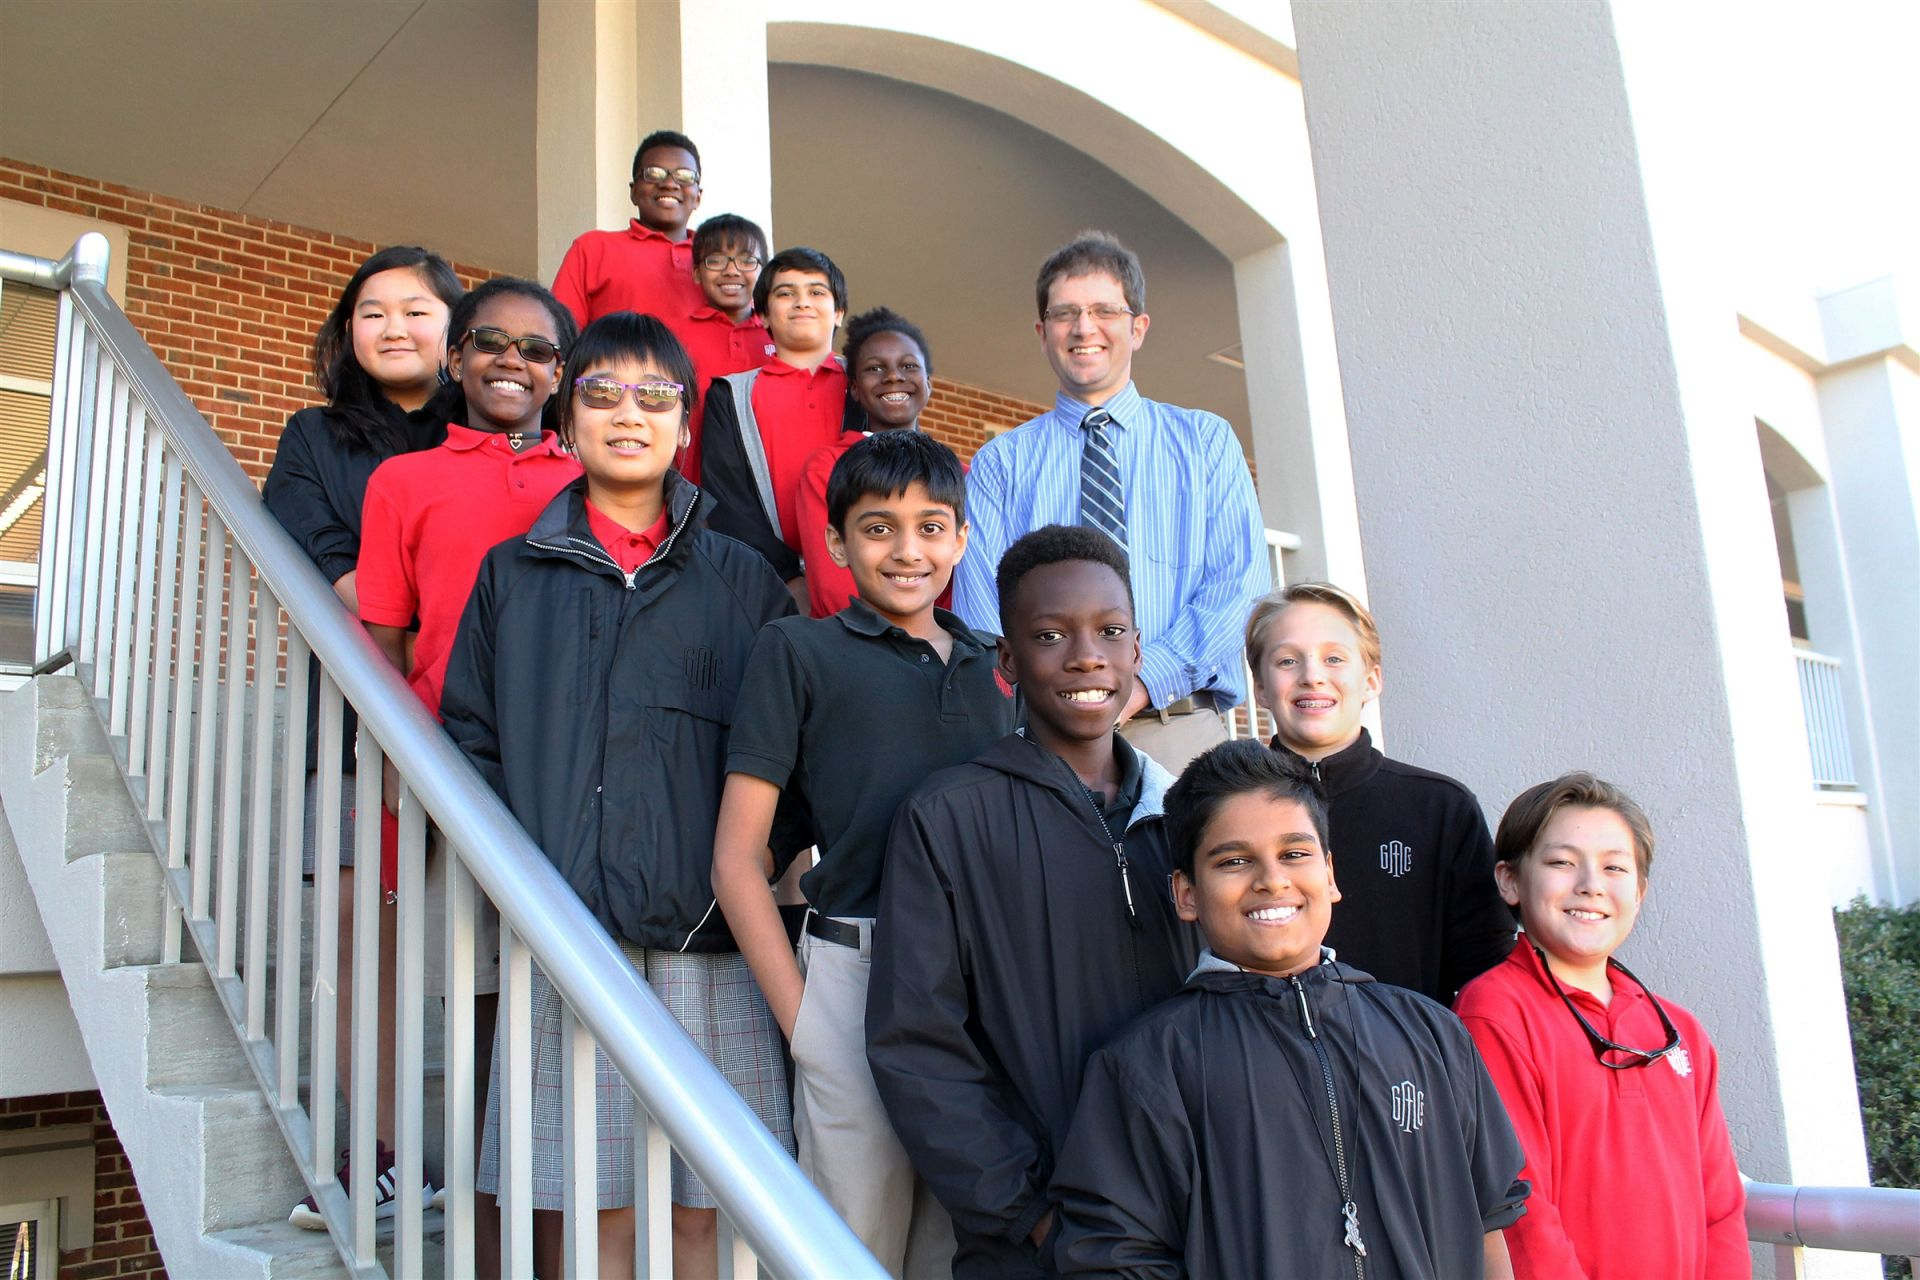 The Middle School Academic Team meets regularly throughout the school year, preparing for competitions.